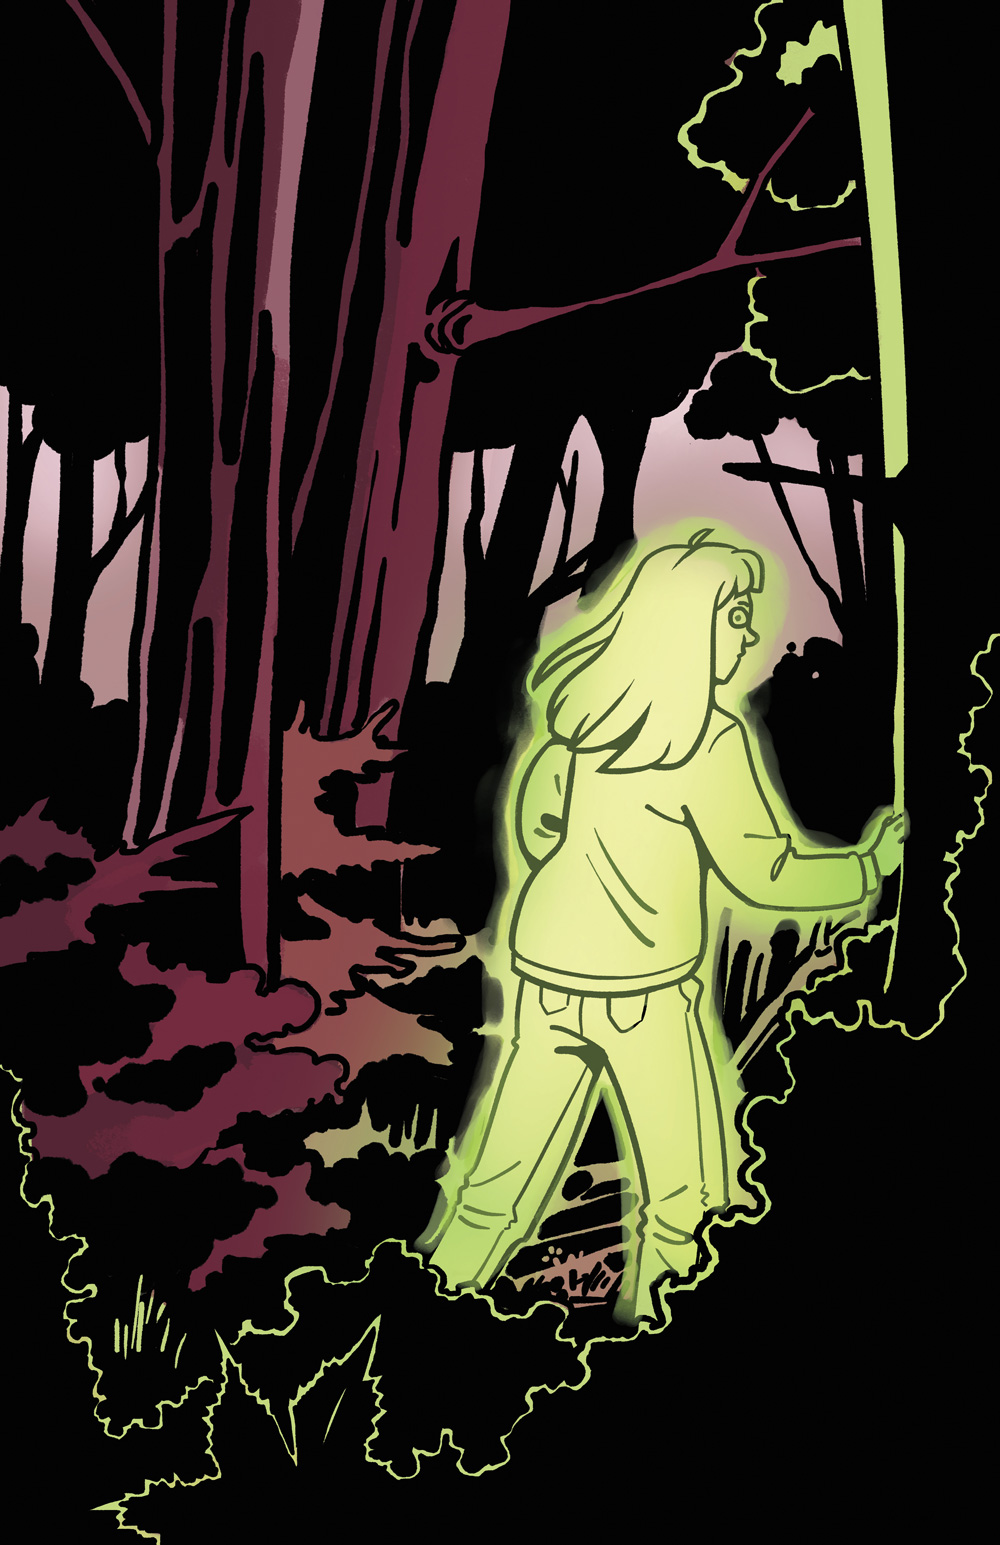 A green, ghostly girl stands in the woods.